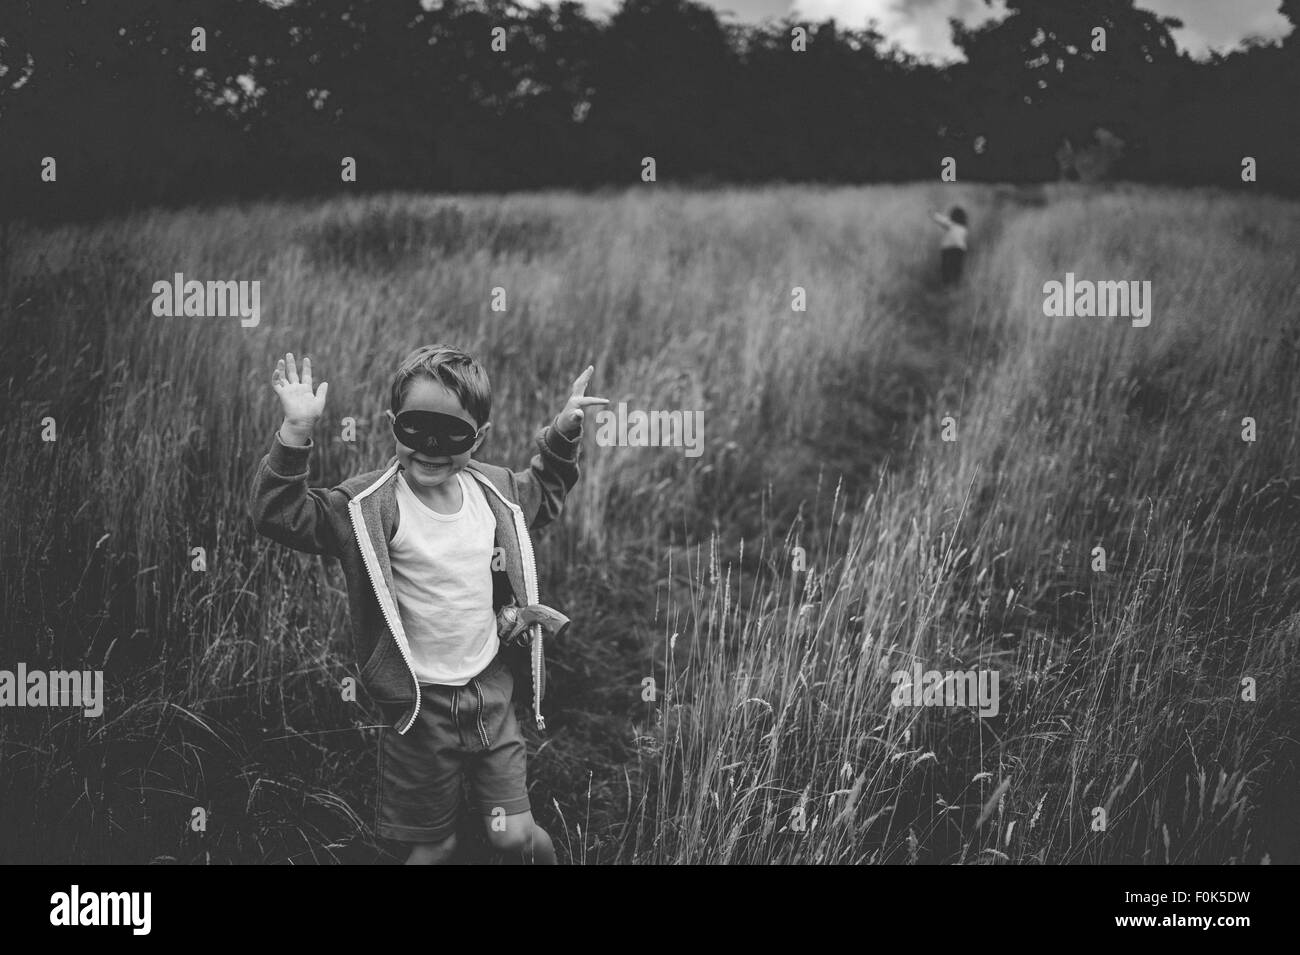 A young boy in a mask with a toy gun in a field - Stock Image